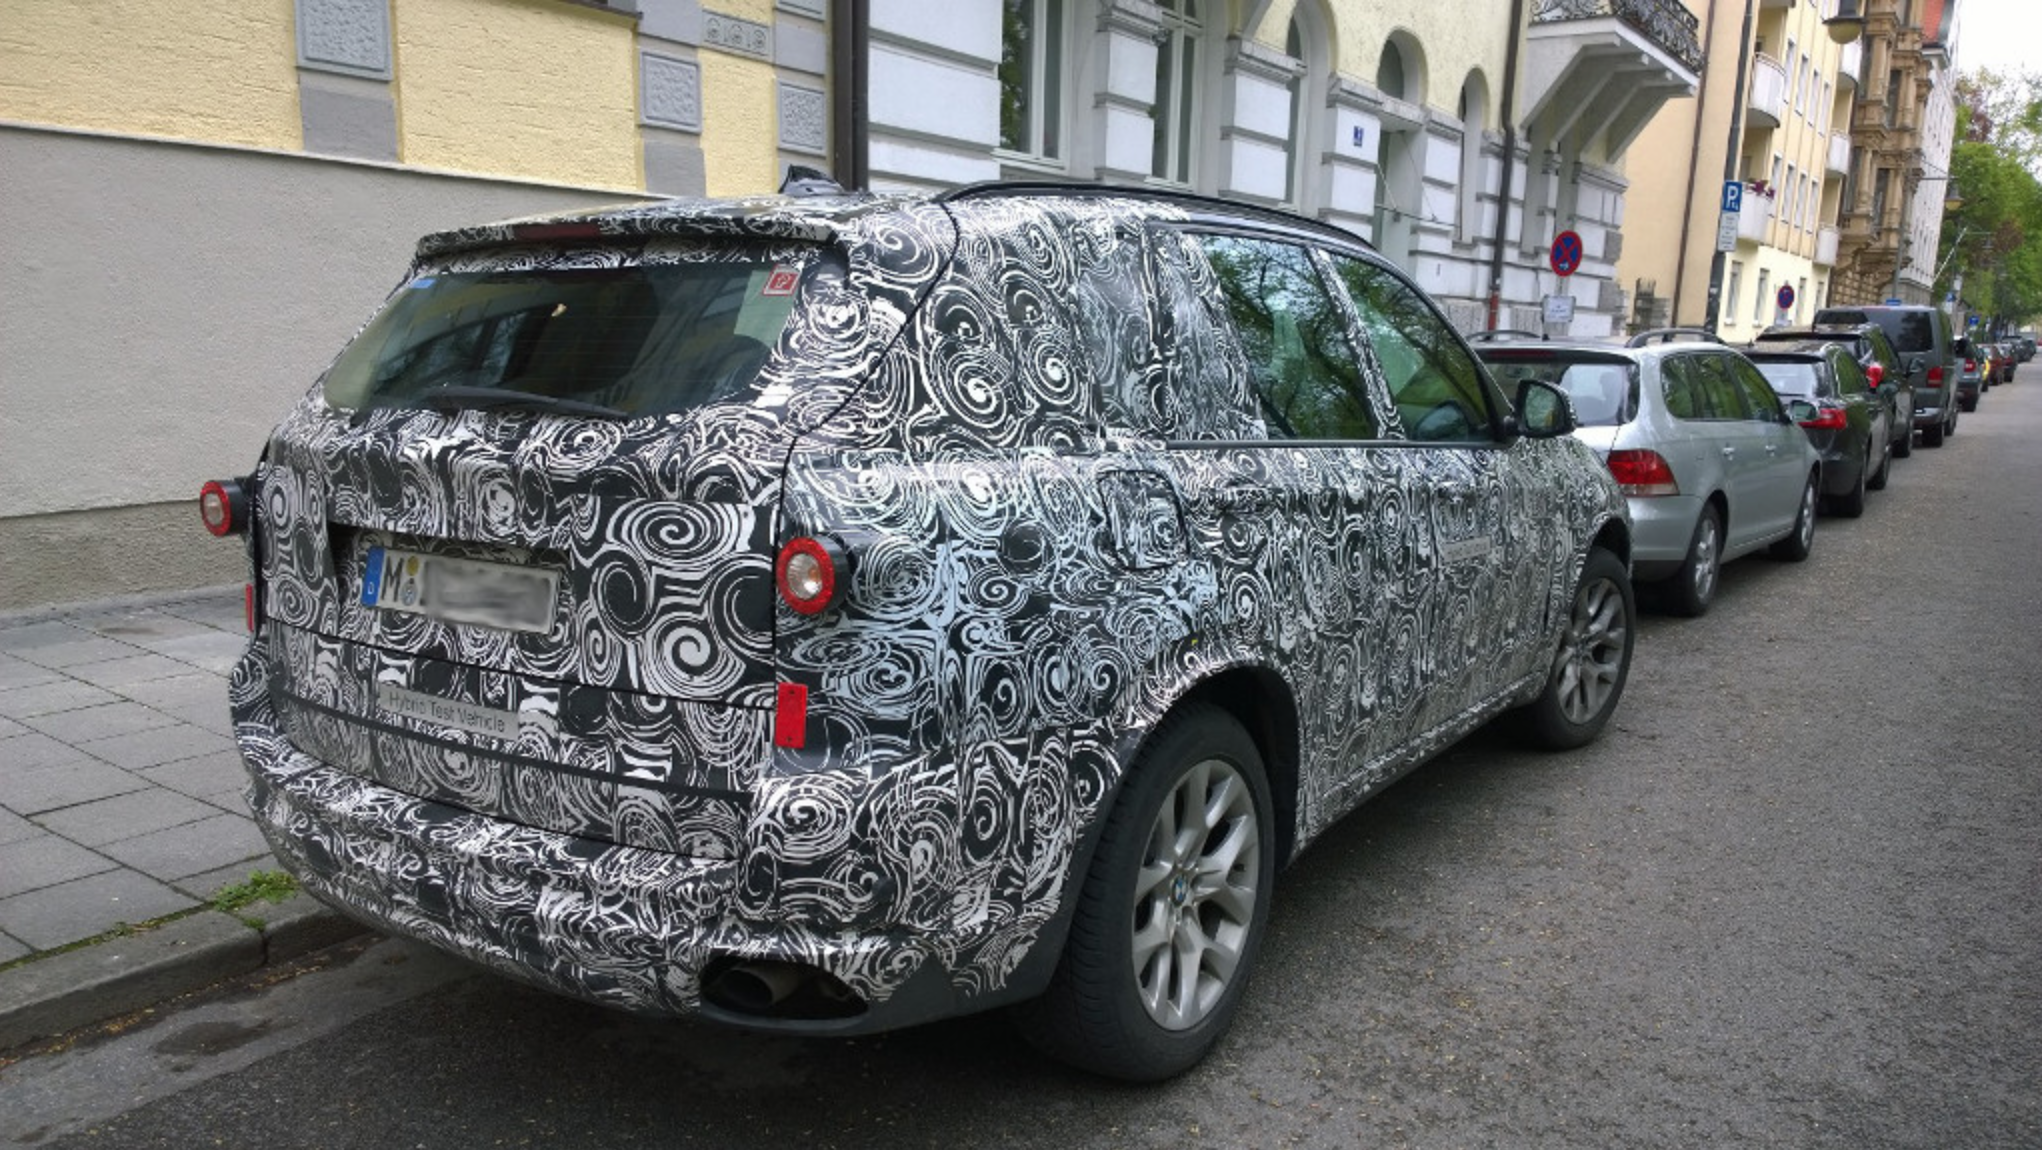 Moniteurautomobilebe Caught The X7 On Prowl In Munich With Typical BMW Psychedelic Camouflage SAV Appears To Be Very Similar X5